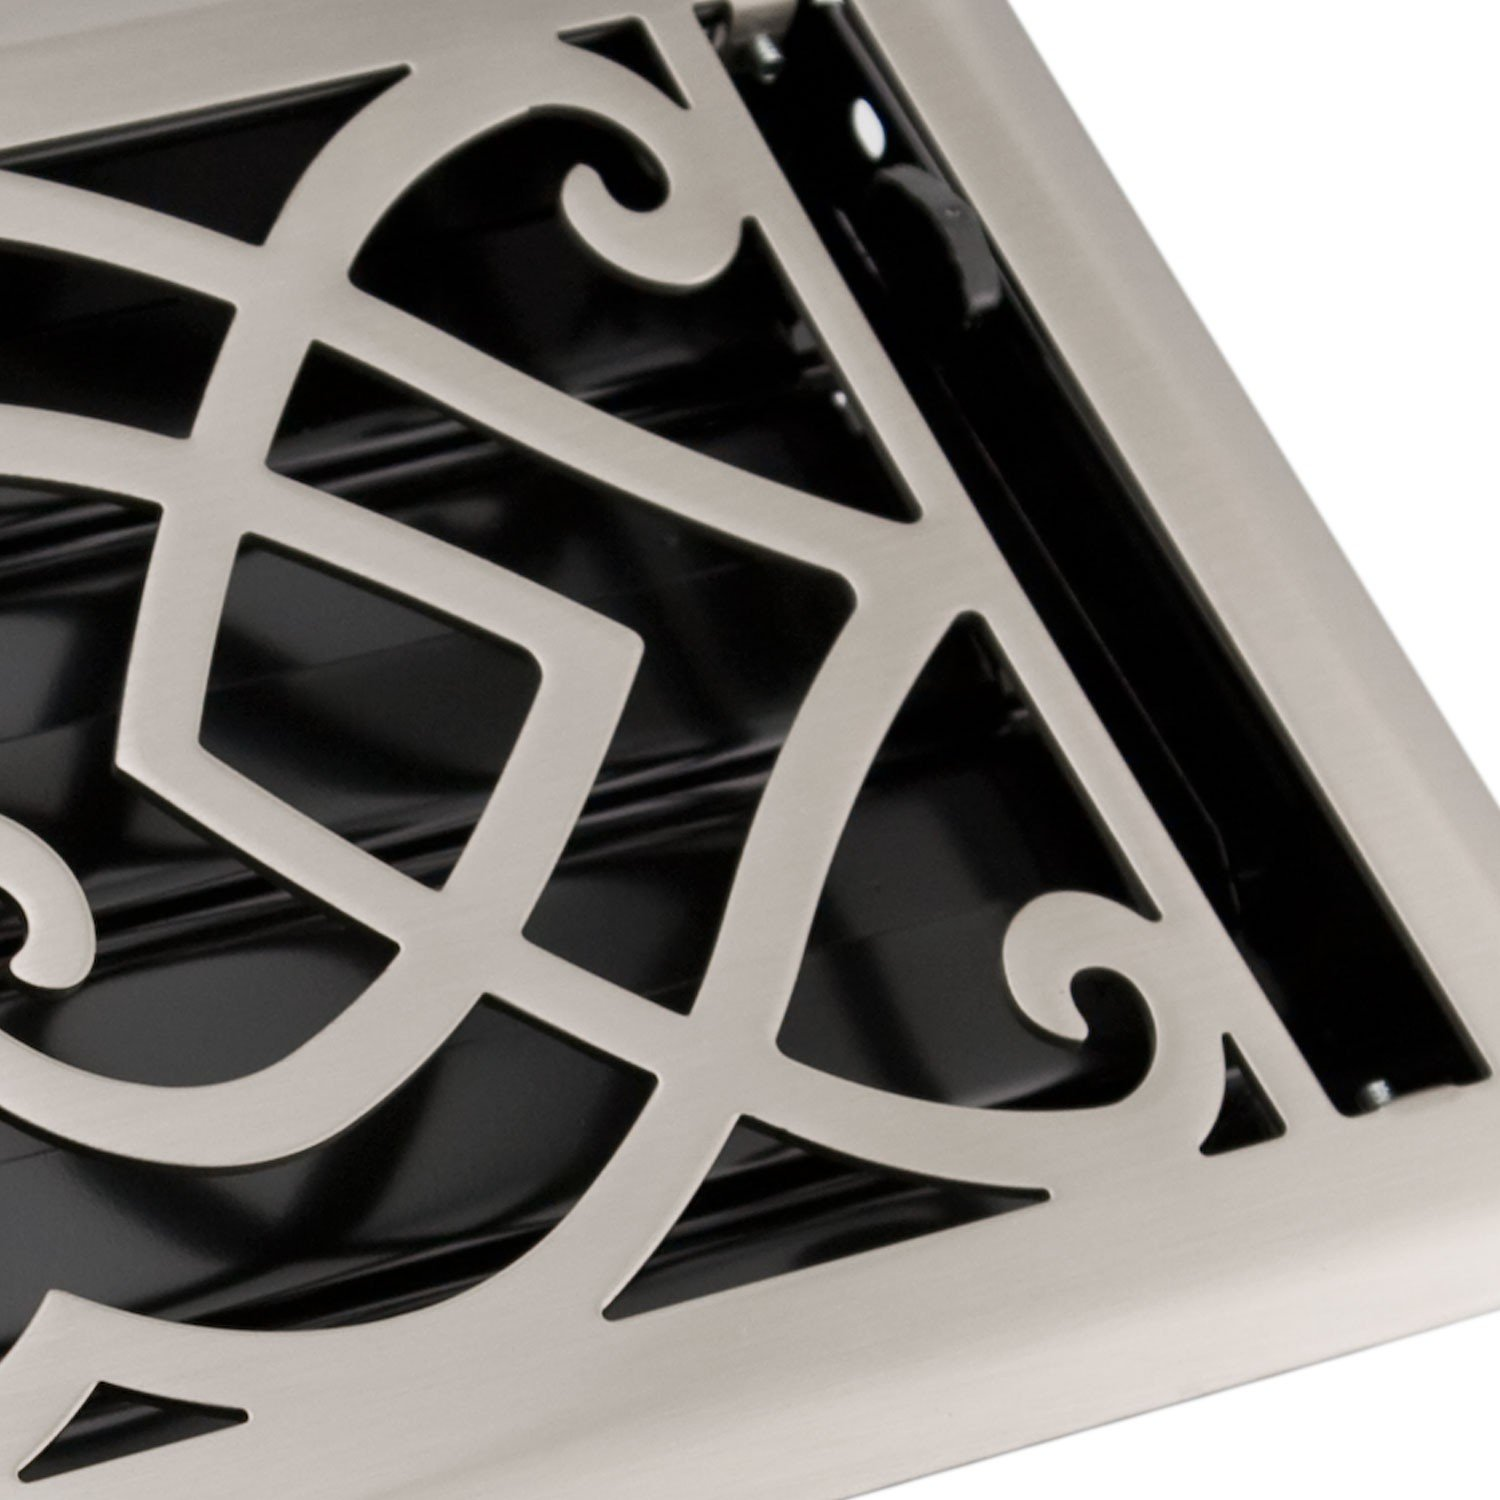 Naiture 6'' x 12'' Steel Wall Register Victorian Style Brushed Nickel Finish